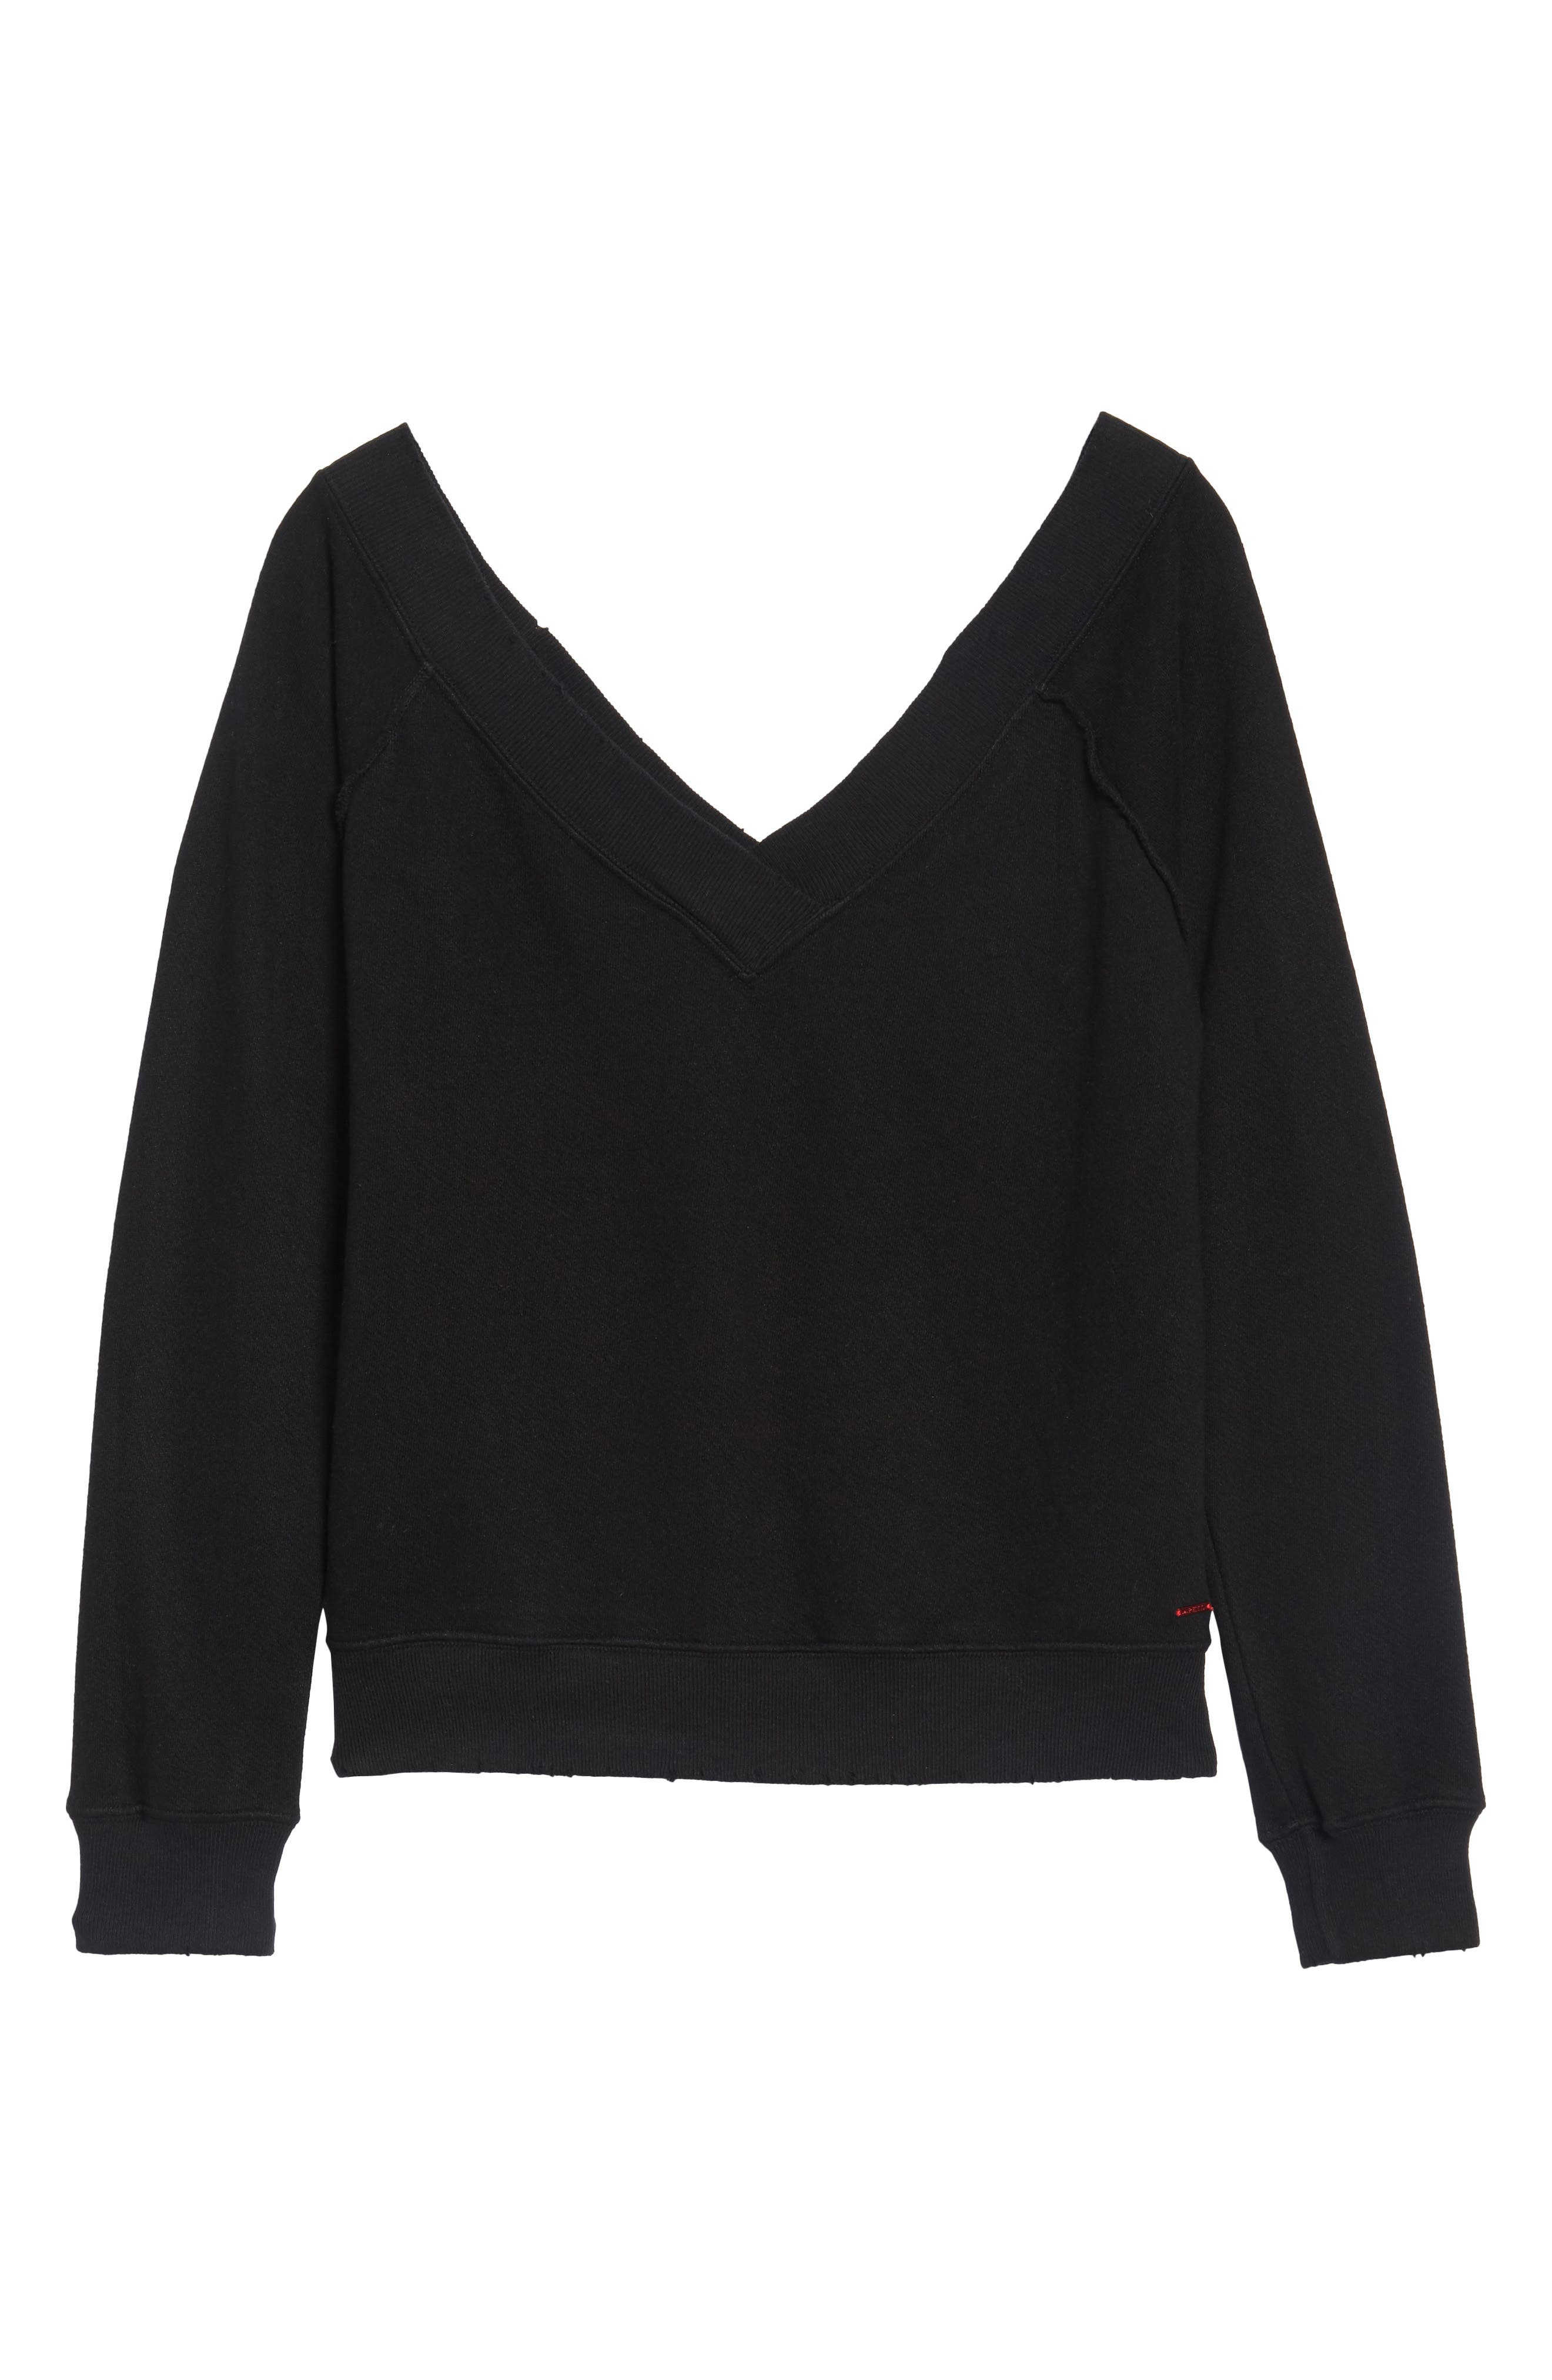 Mayer V-Neck Sweatshirt,                             Alternate thumbnail 6, color,                             Black Cat